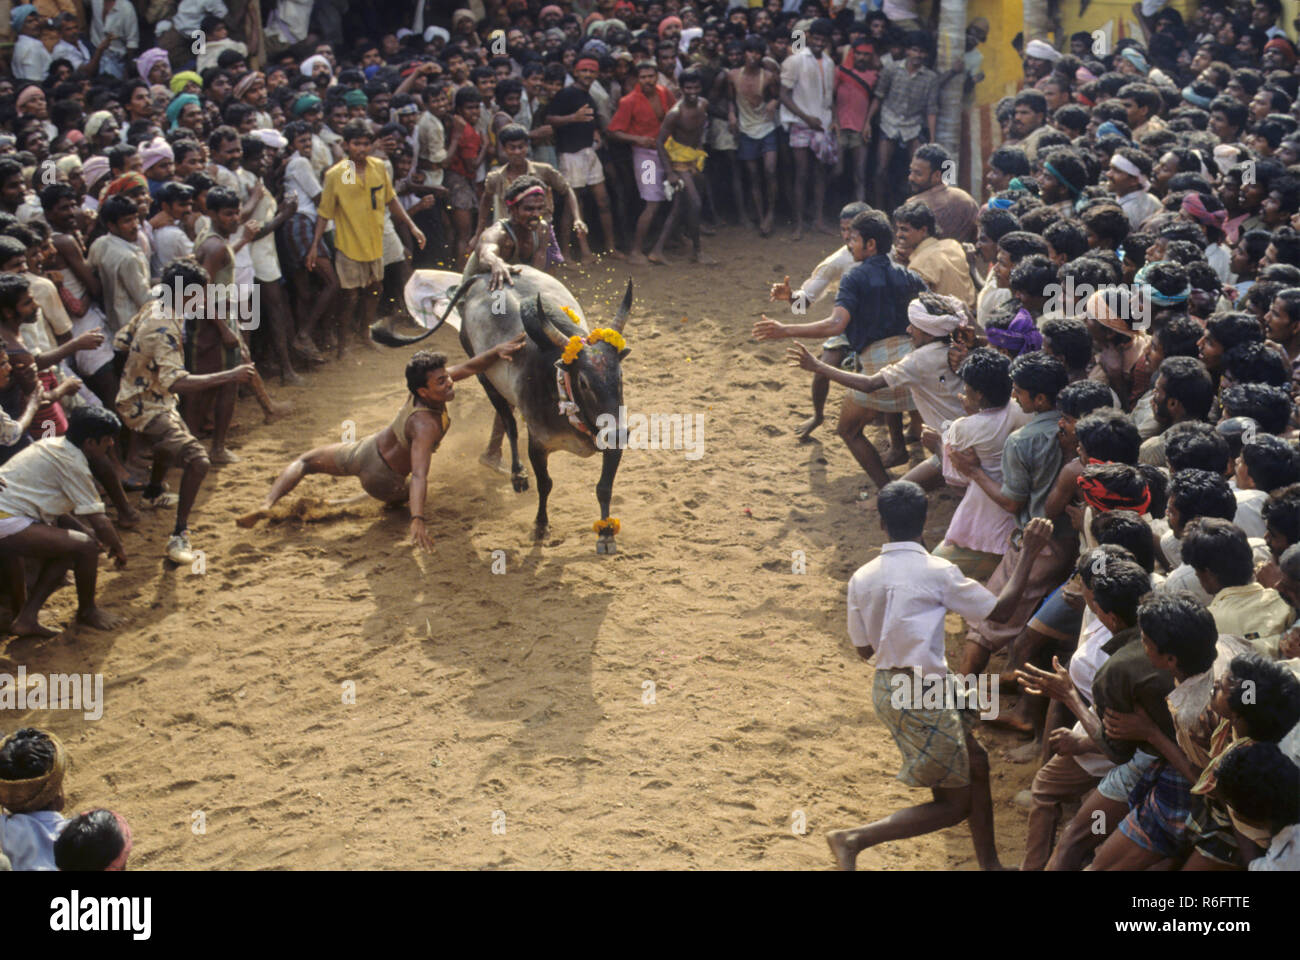 Jallikattu, South Indian version of the taming or running of the bull, tamil nadu, india - Stock Image